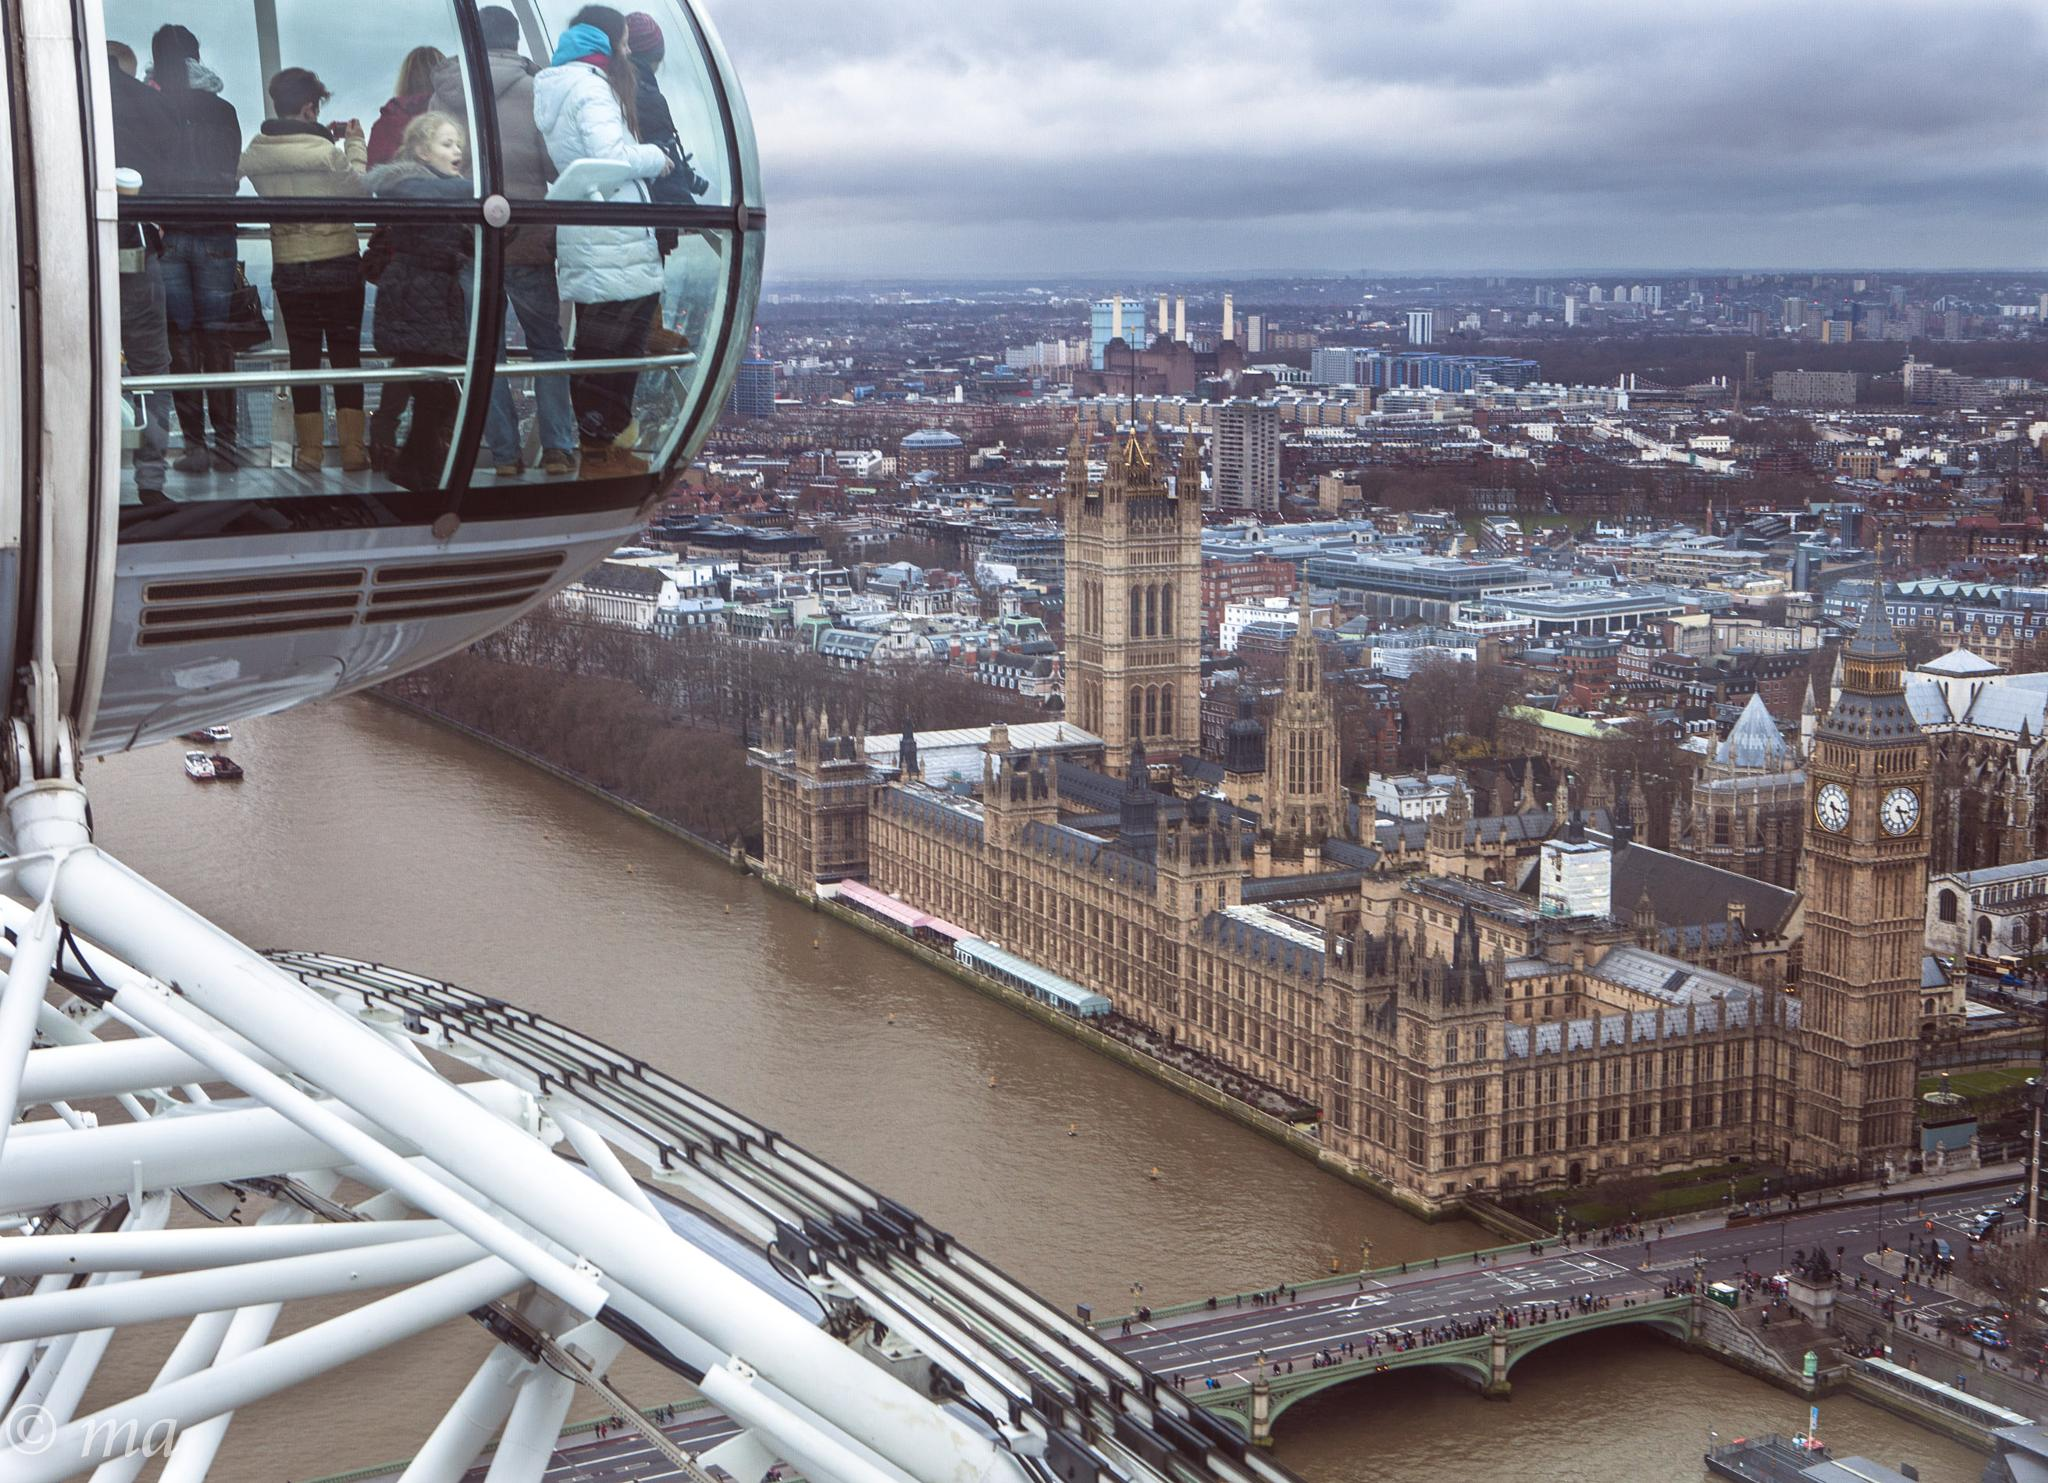 An Eye on Parliament! by Mark Andrews